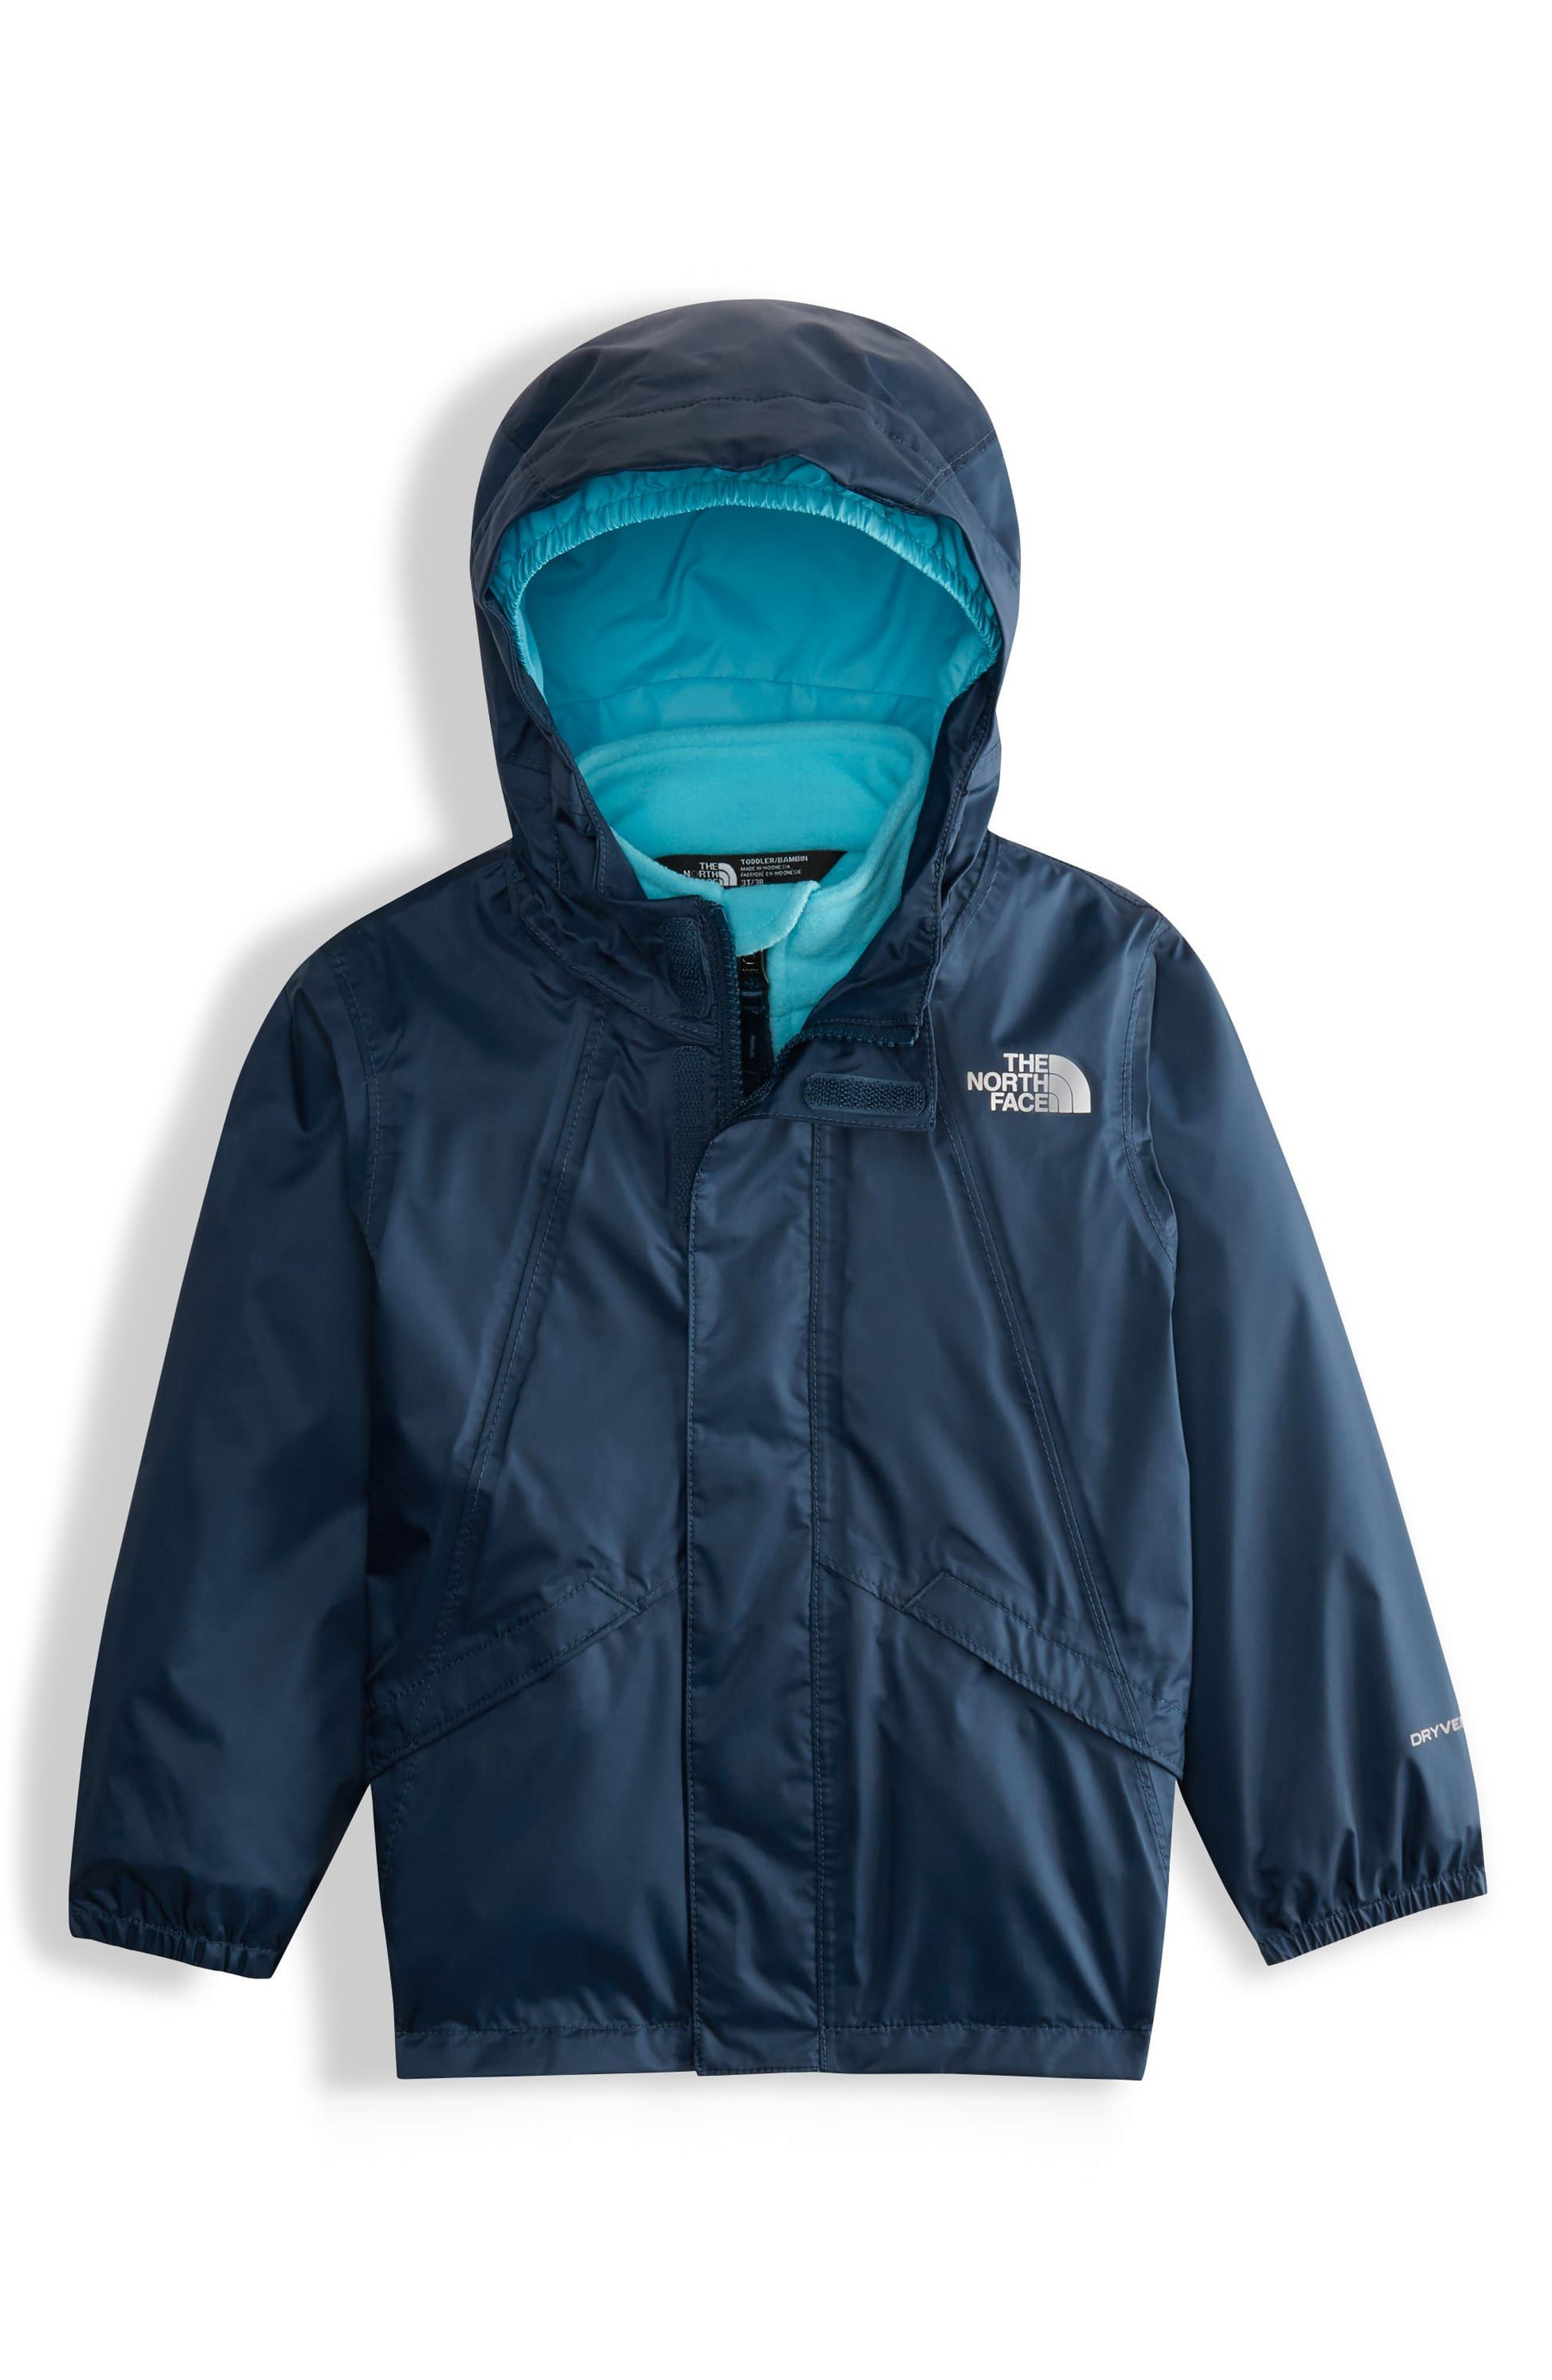 The North Face Stormy Rain Triclimate® Waterproof 3-in-1 Jacket (Toddler Girls & Little Girls)